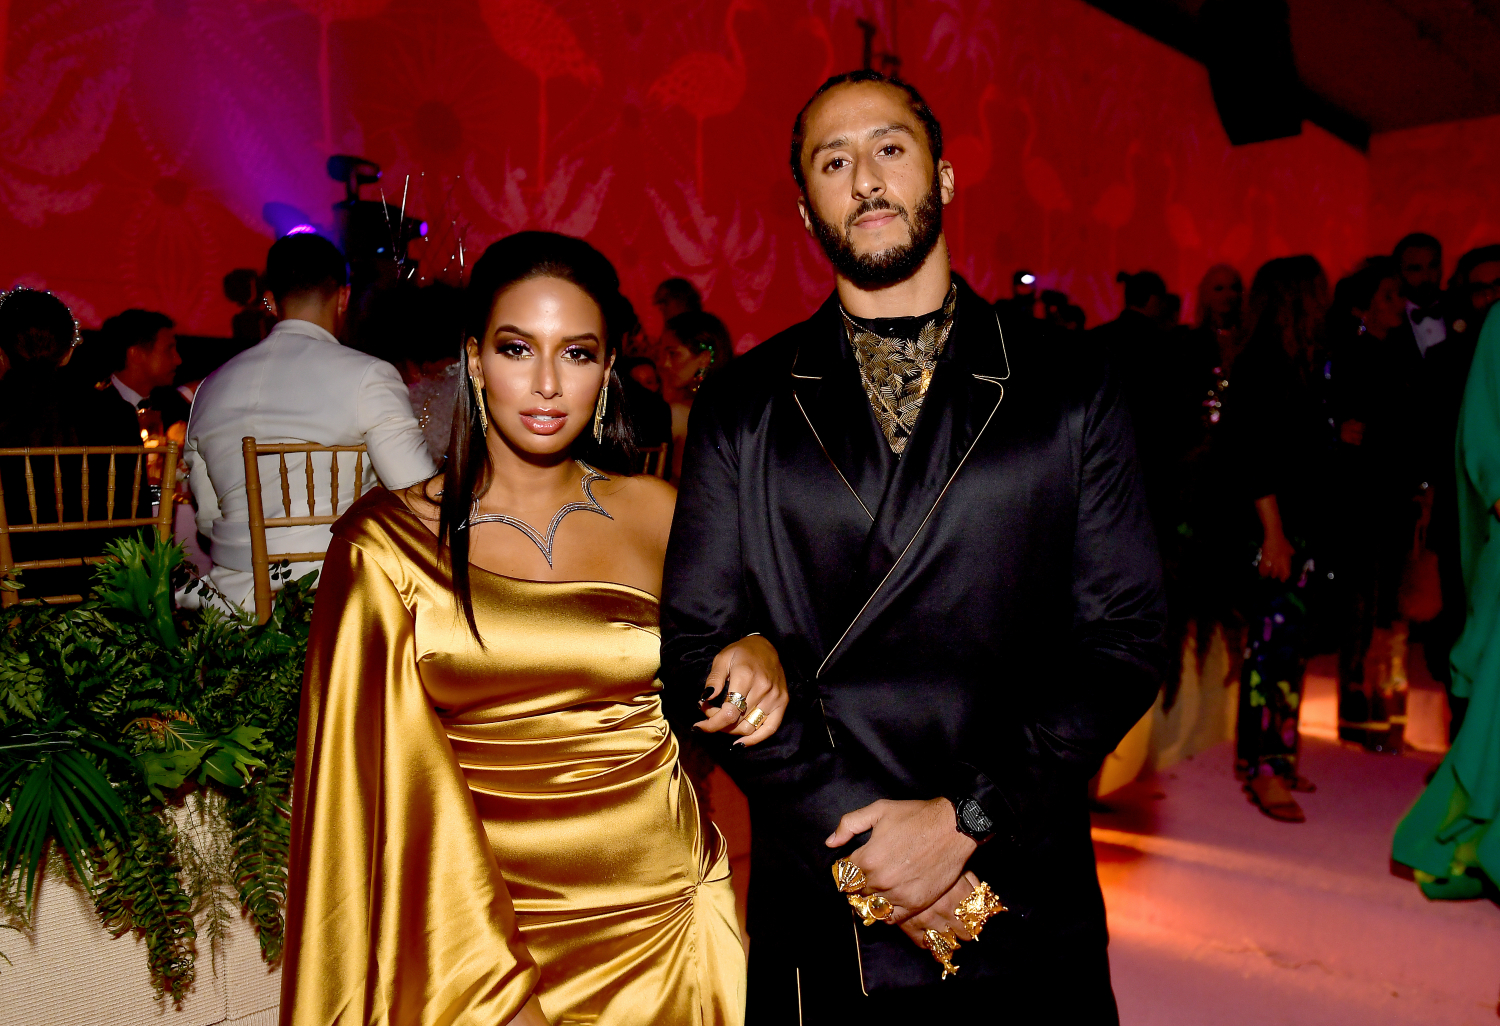 Colin Kaepernick worked out in front of NFL teams in 2019. Since he is still not in the NFL, his girlfriend Nessa sent out a strong message.